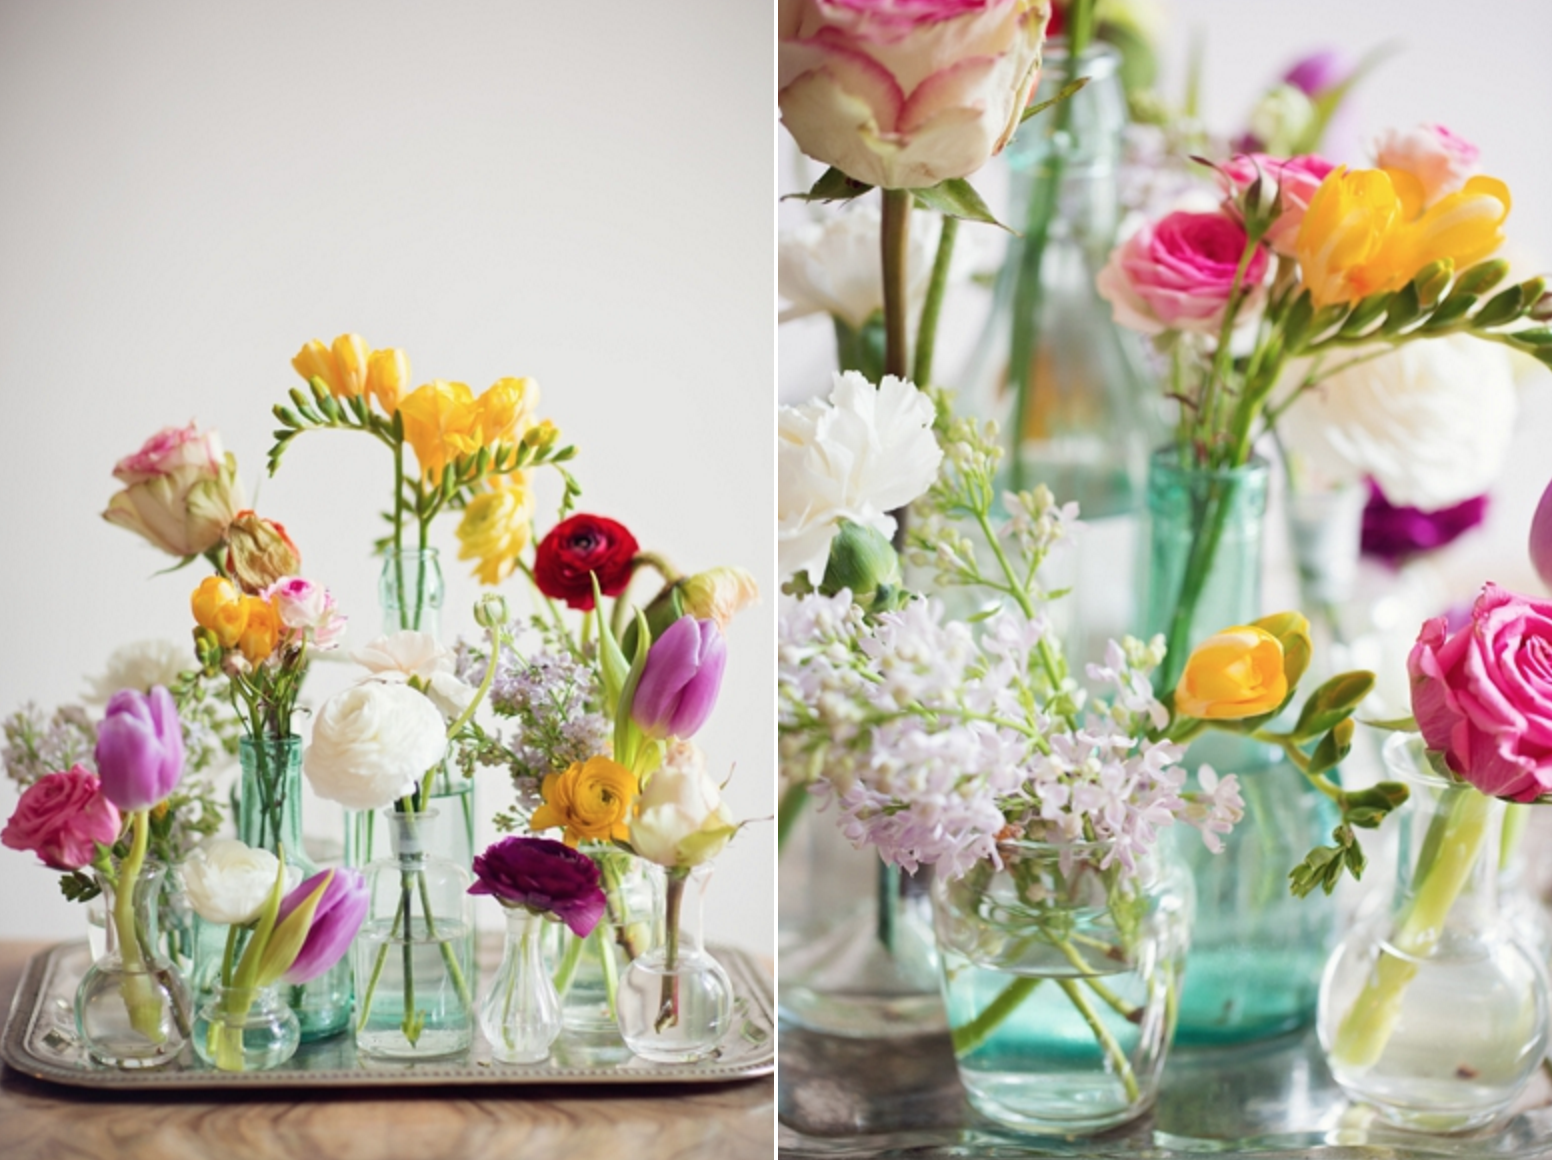 How to Make Simple DIY Flower Arrangements using grocery store flowers. Click through for a few easy tips and tricks!